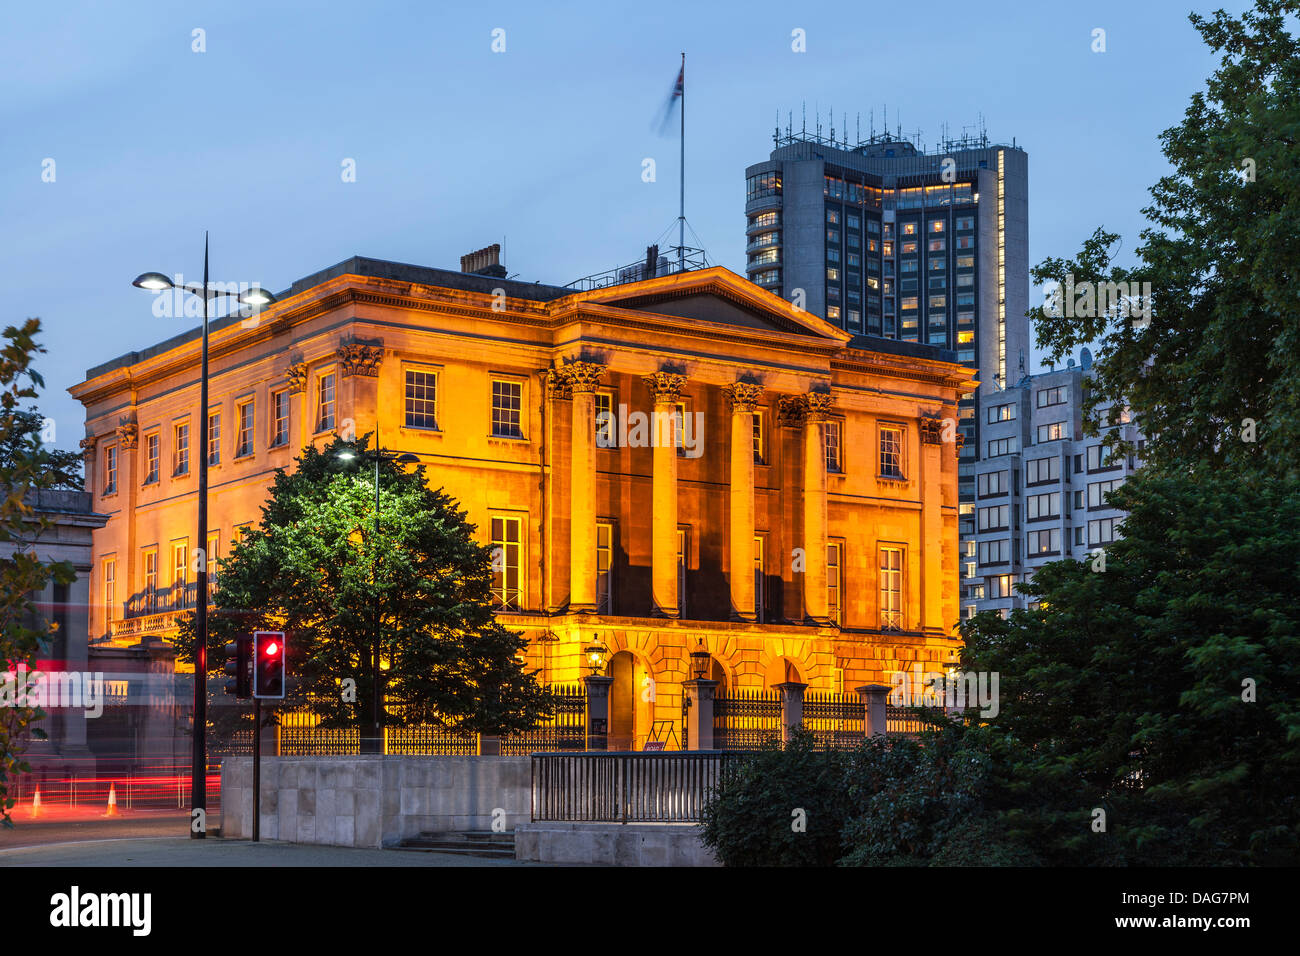 Apsley House,The Duke of Wellington Museum,Hyde Park Corner,London,England - Stock Image